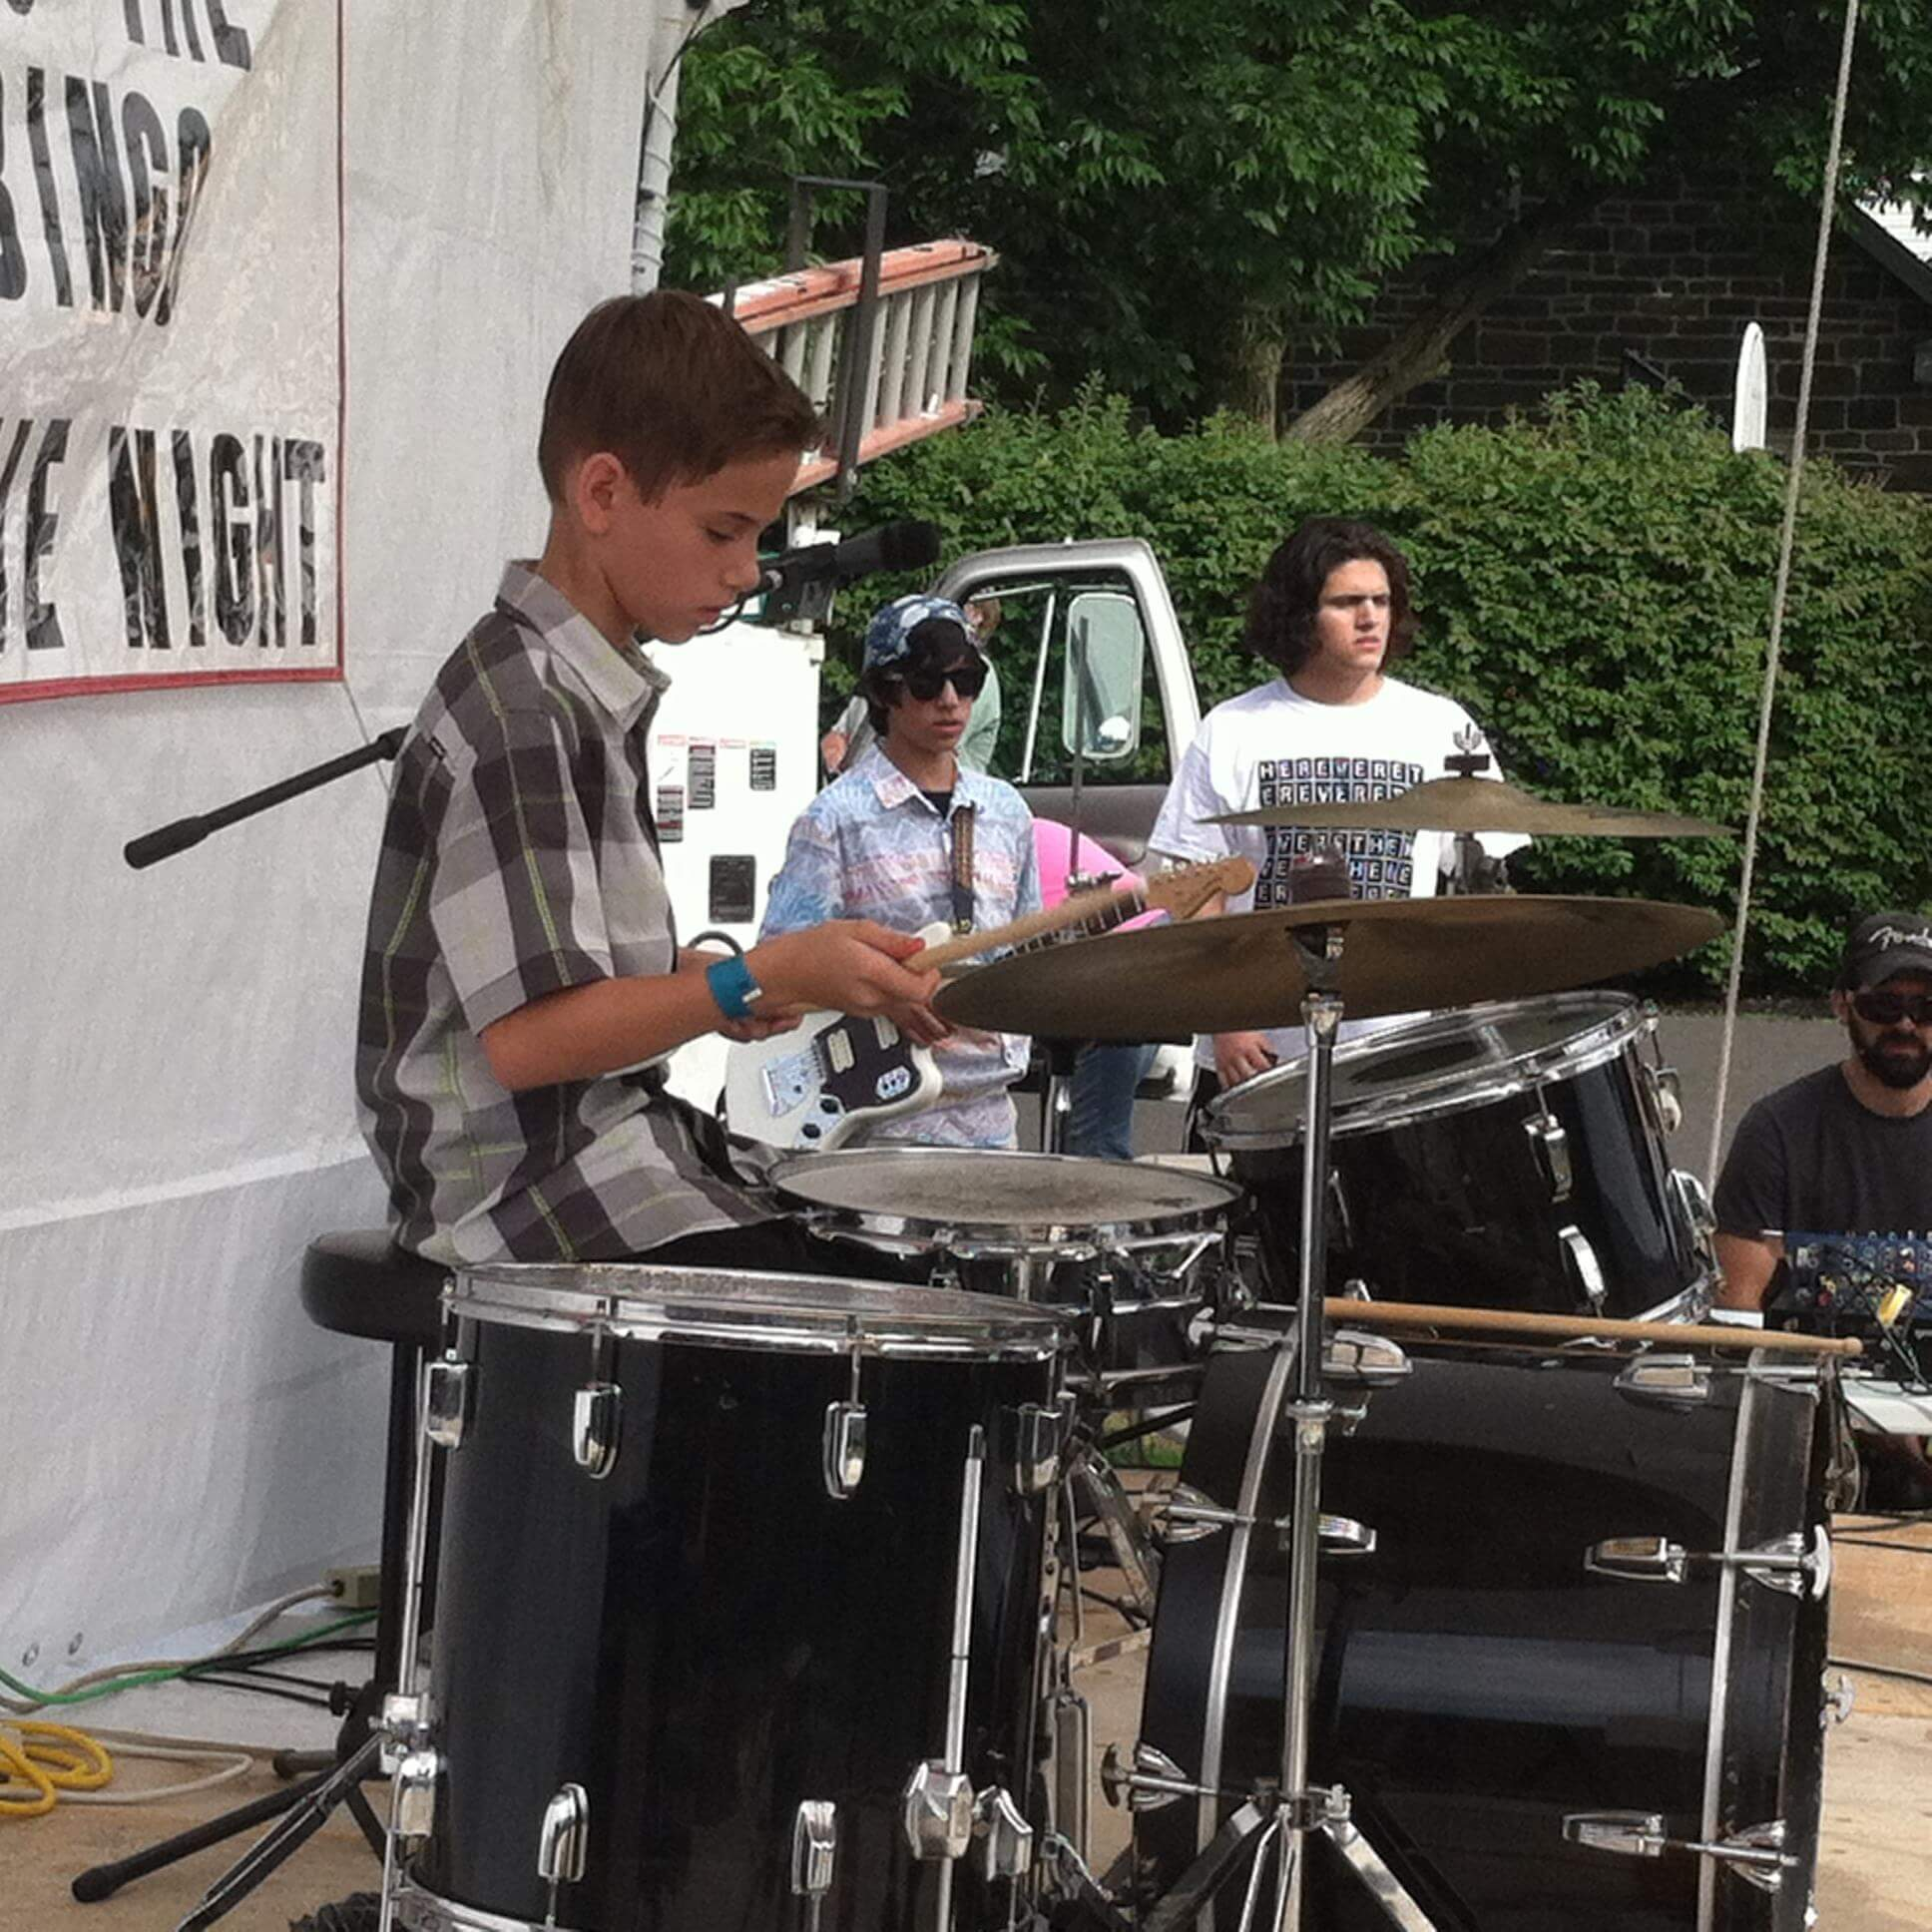 Students of School of Rock Doylestown's Performance Program play live music at local venues, just like real rockstars!